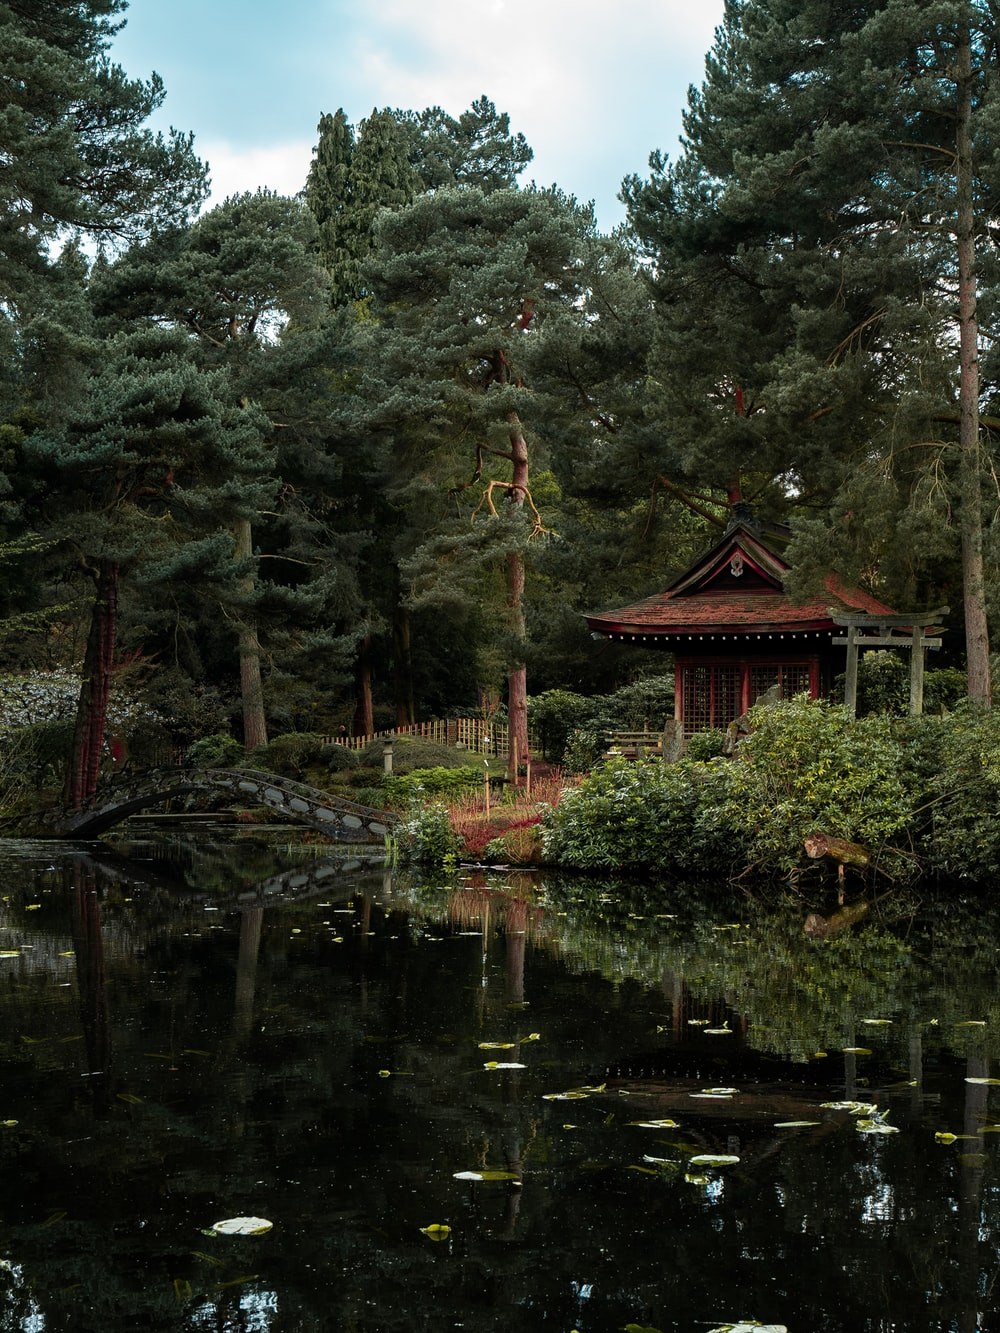 brown wooden house on lake surrounded by trees during daytime